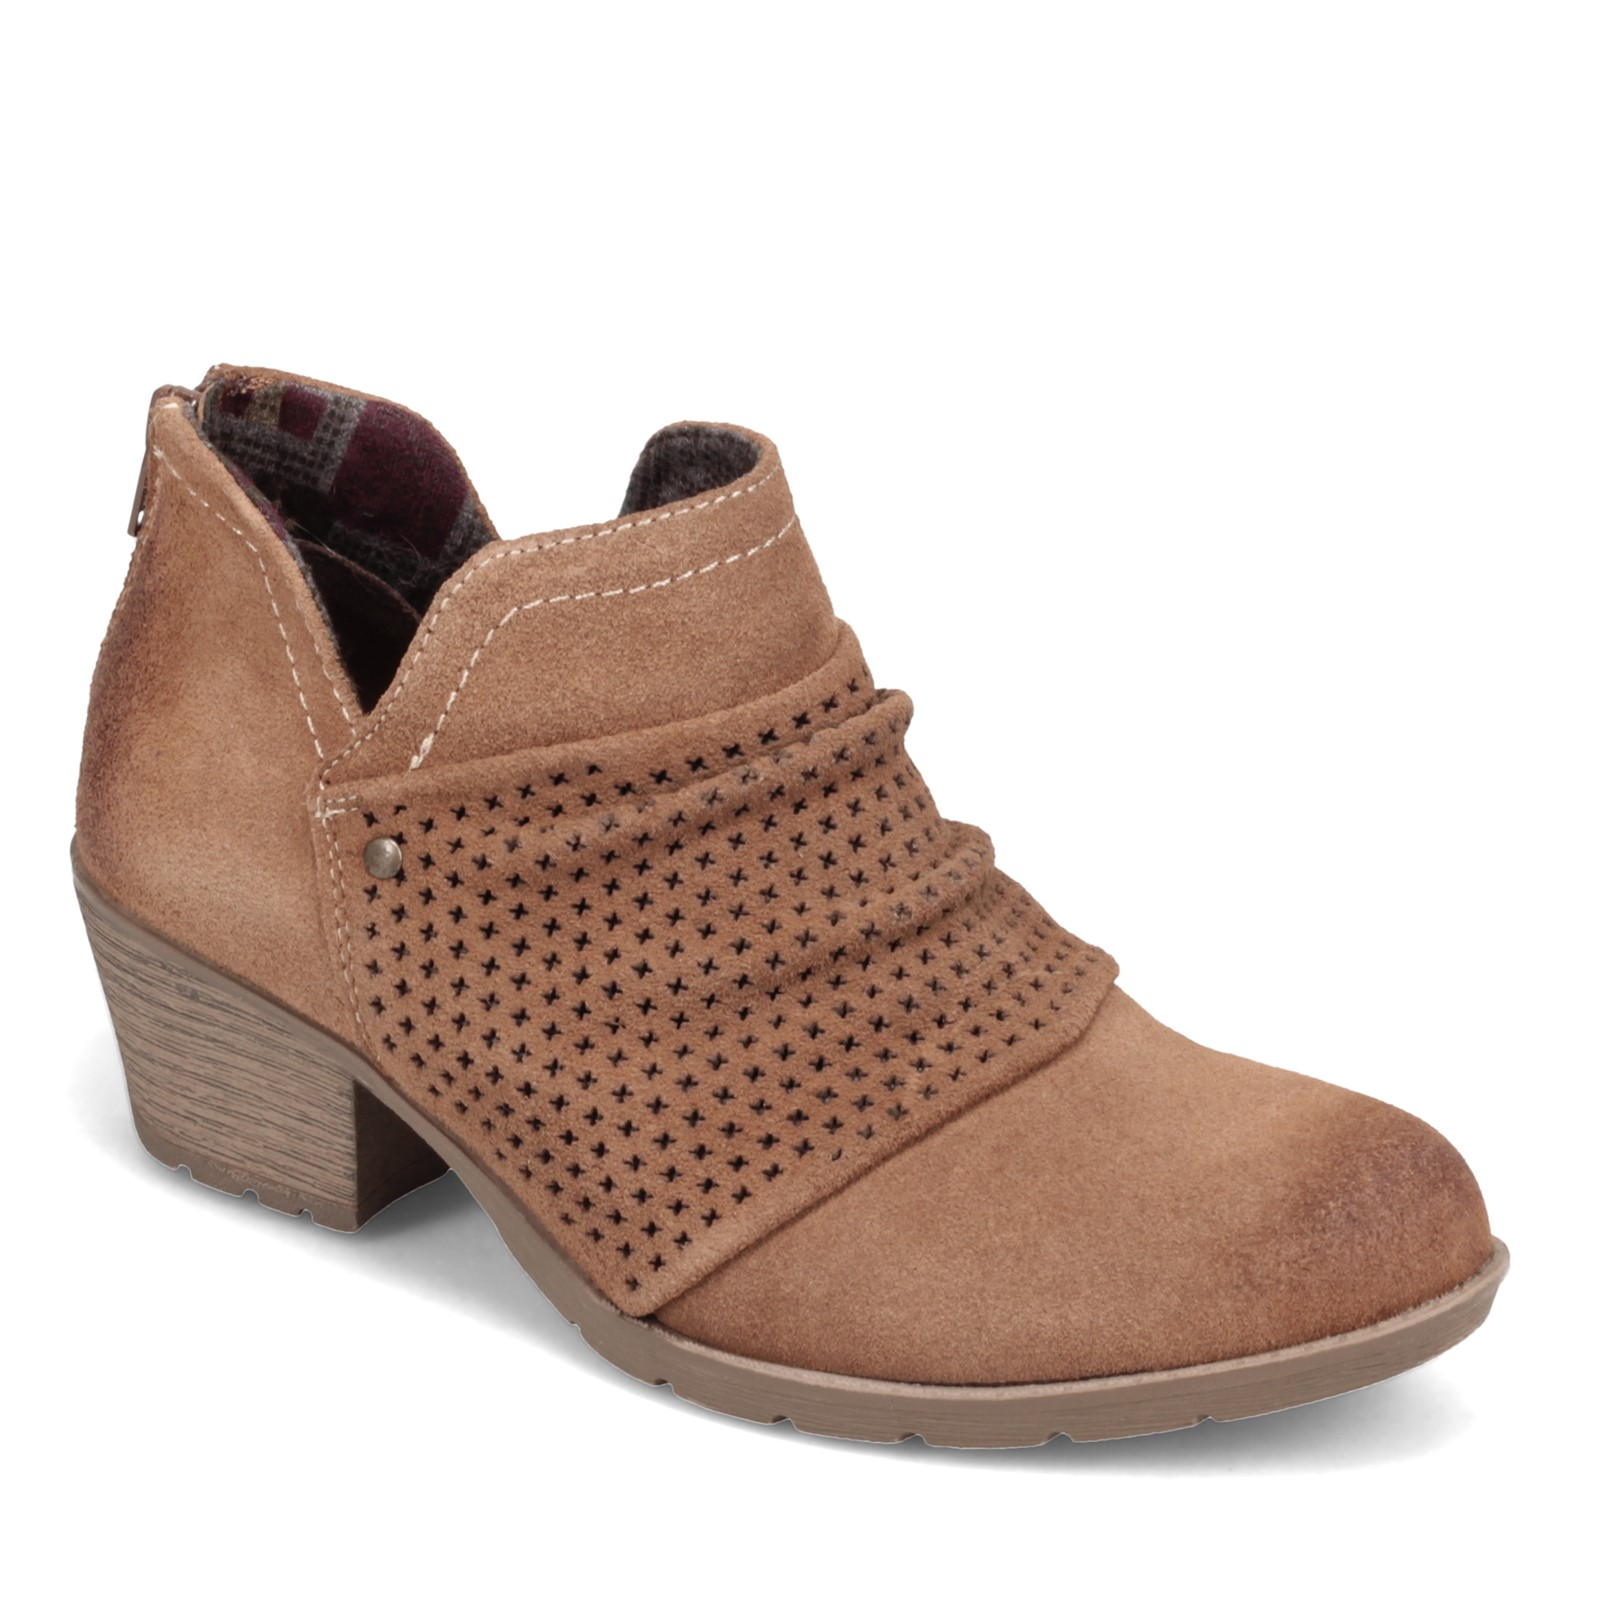 Women's Earth Origins, Oakland Amanda Ankle Boot